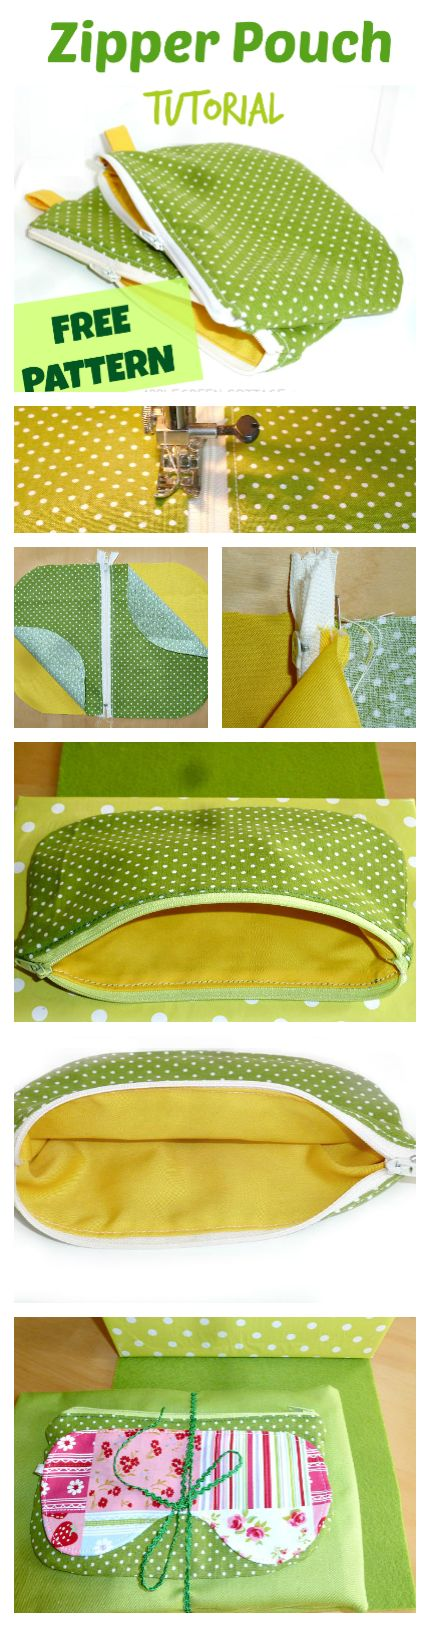 Never need to buy a zipper pouch again! Easy + quick to make + a great holiday gift! I'll make tons of these!